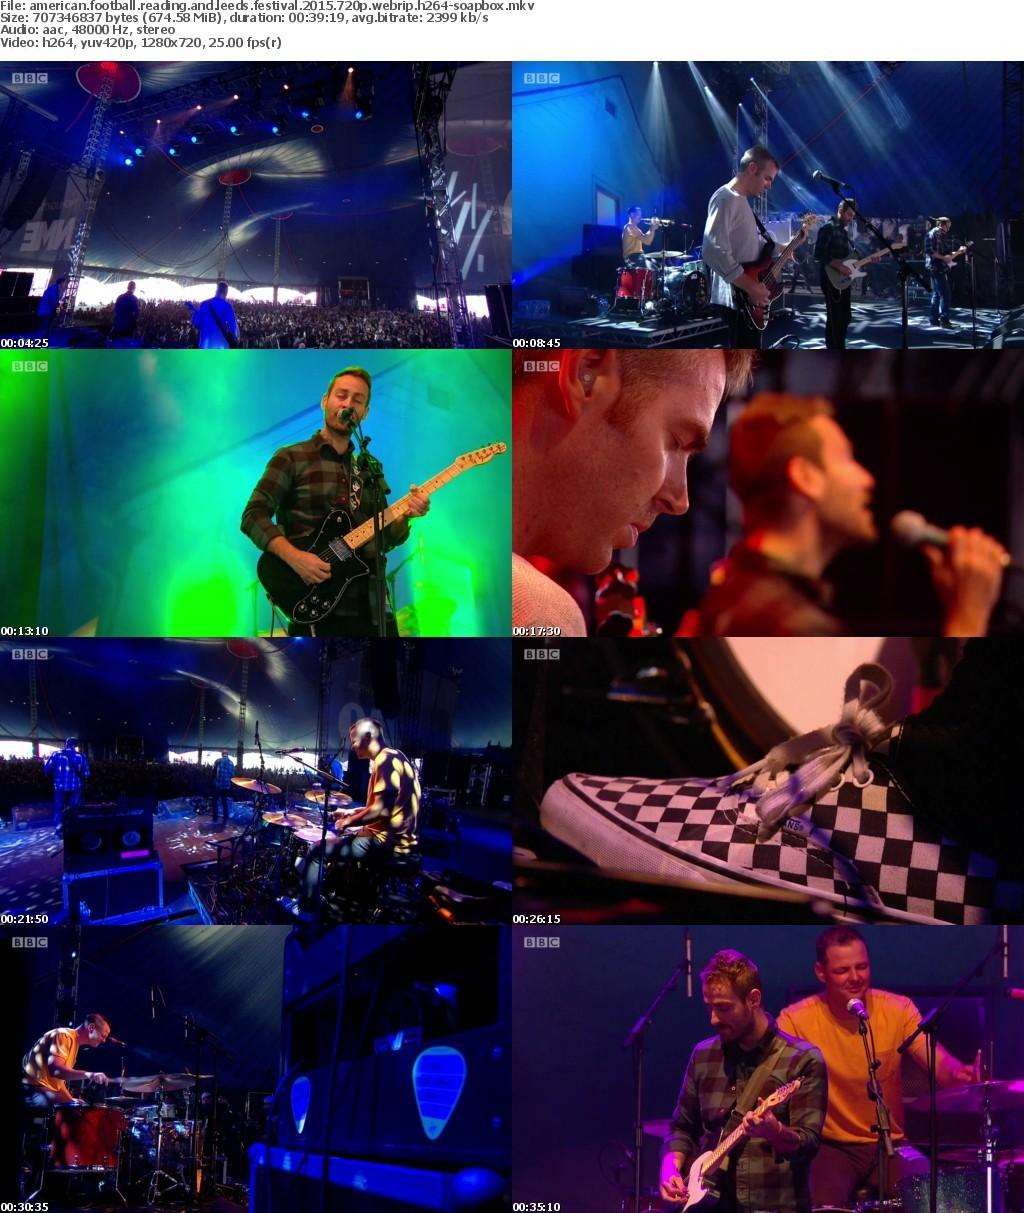 American Football Reading And Leeds Festival 2015 720p WEBRip H264-SOAPBOX